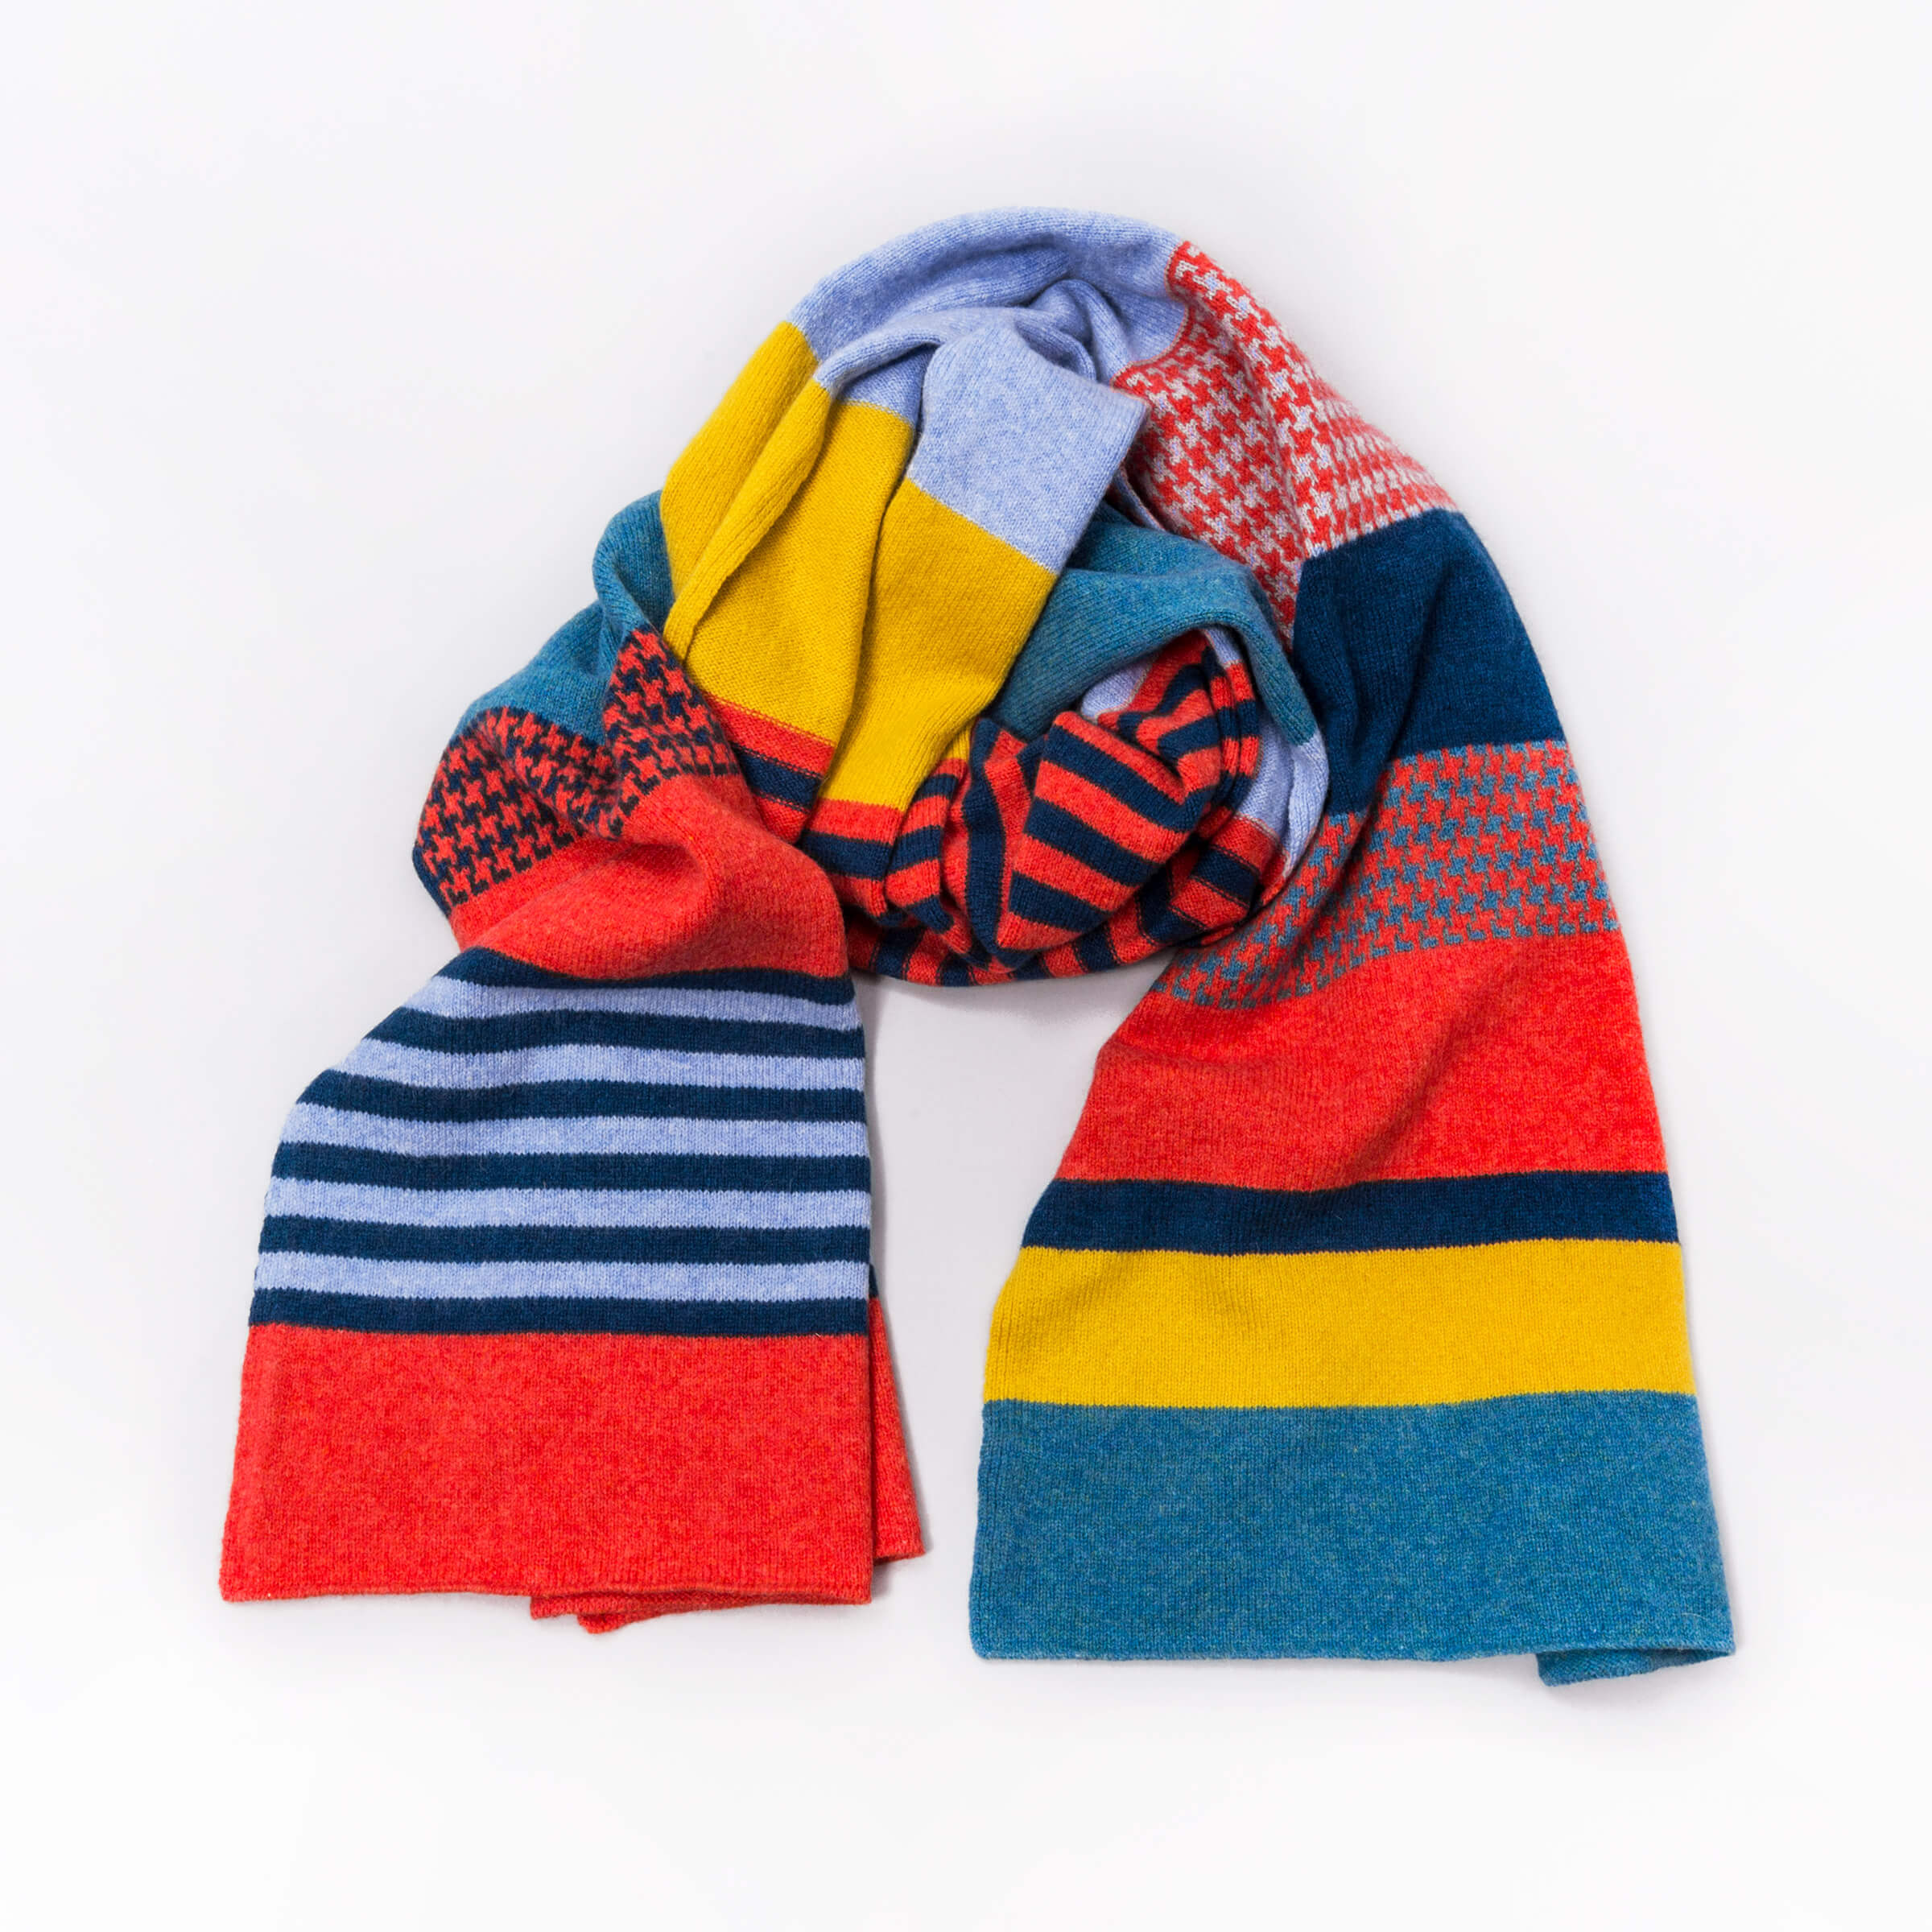 Local Heroes - Green Thomas - Blanket Scarves - Hero Colourway - photo Studio RoRo